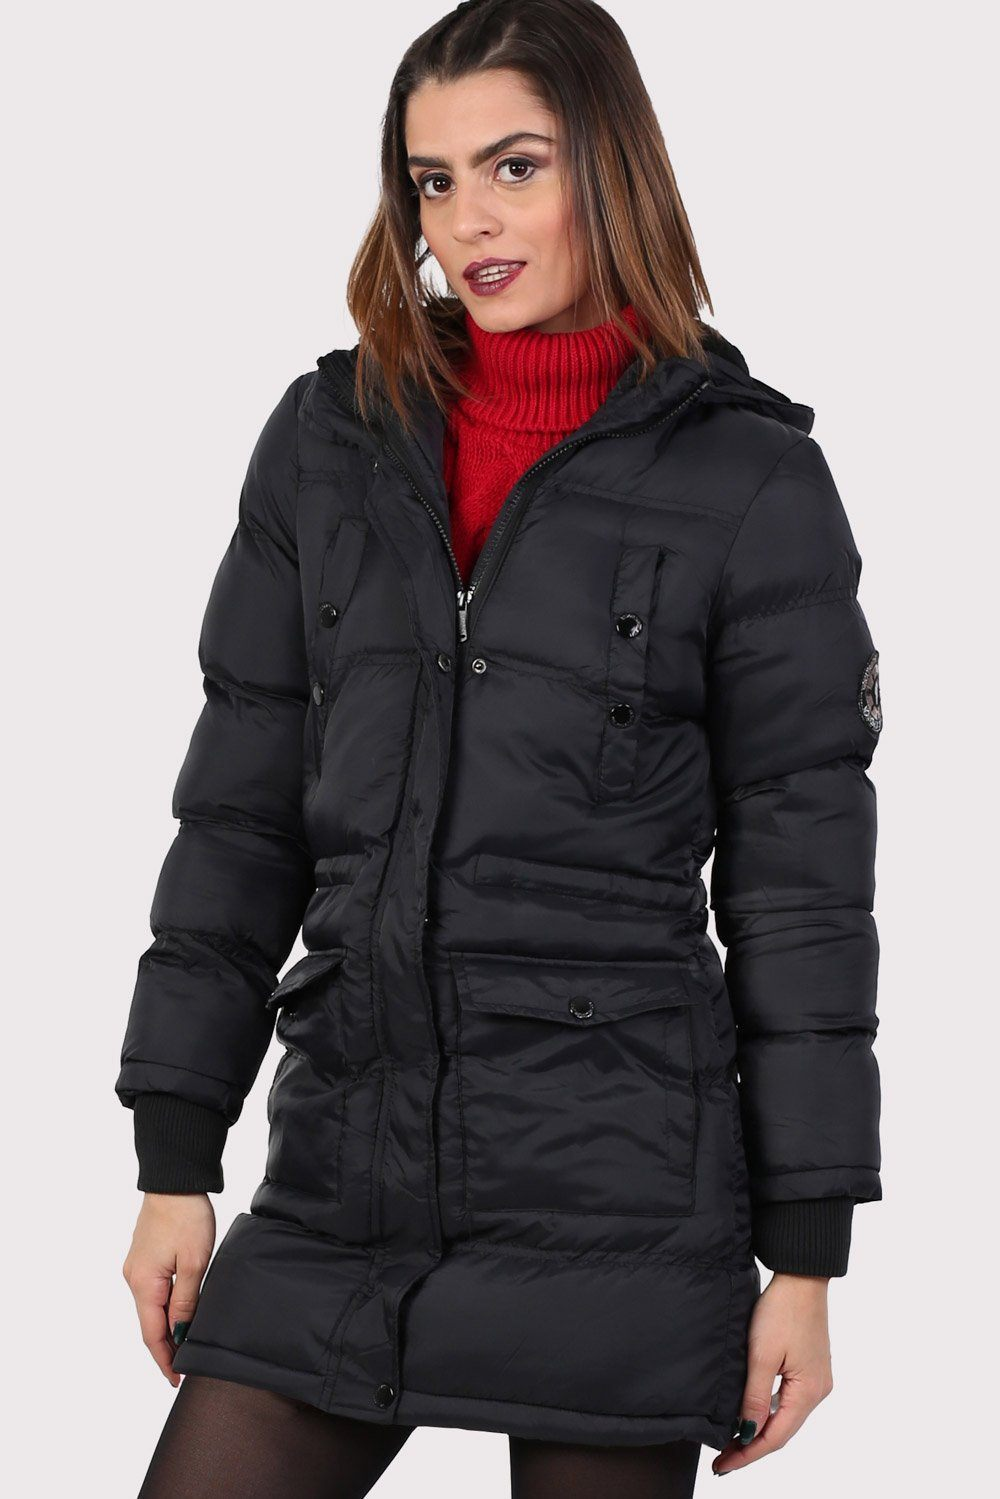 Long Line Padded Puffer Coat With Hood in Black 0